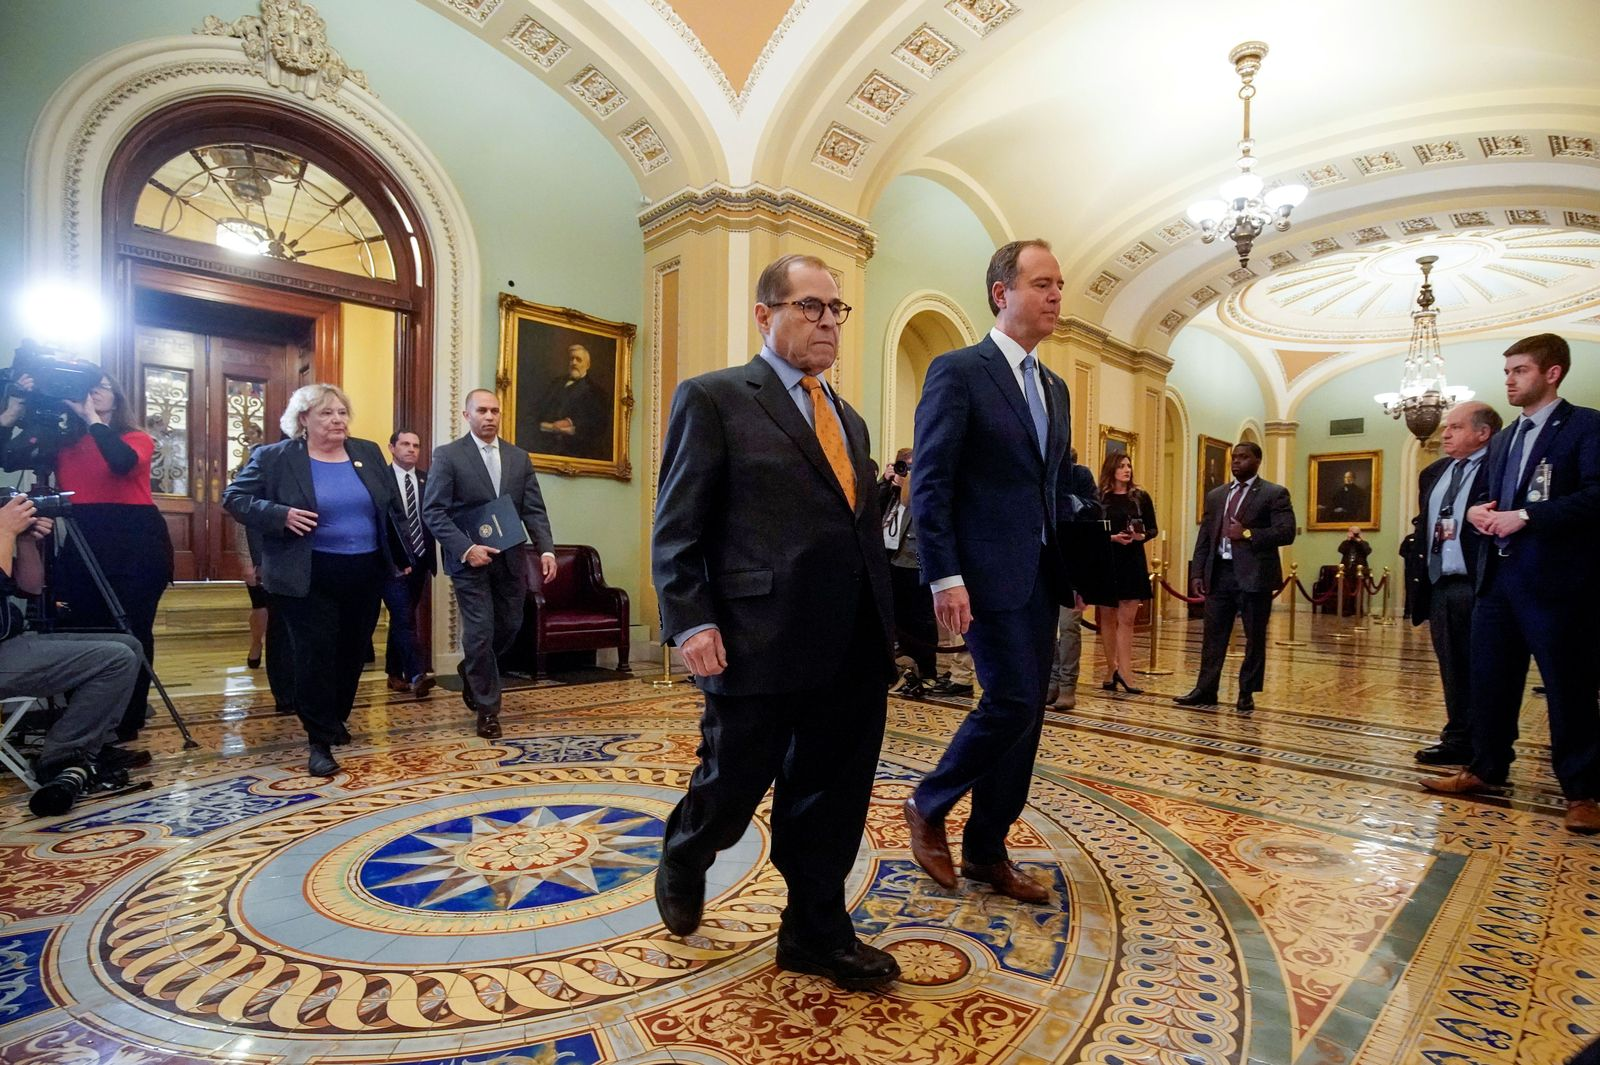 House managers arrive for the procedural start of Senate impeachment trial of President Trump in the U.S. Capitol in Washington